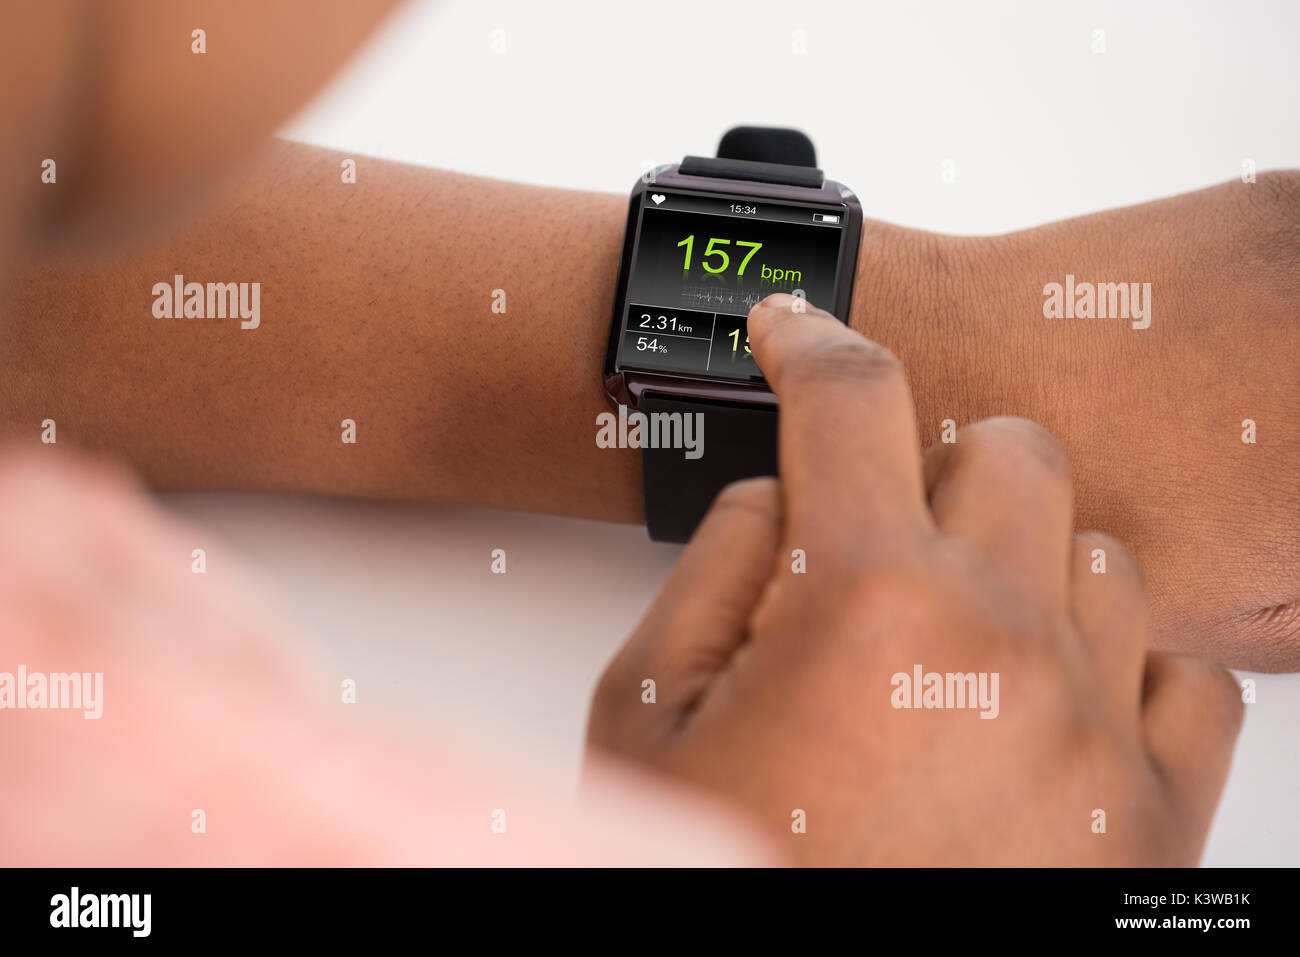 Close-up Of Hand Wearing Smartwatch Showing Heartbeat Rate Stock Photo